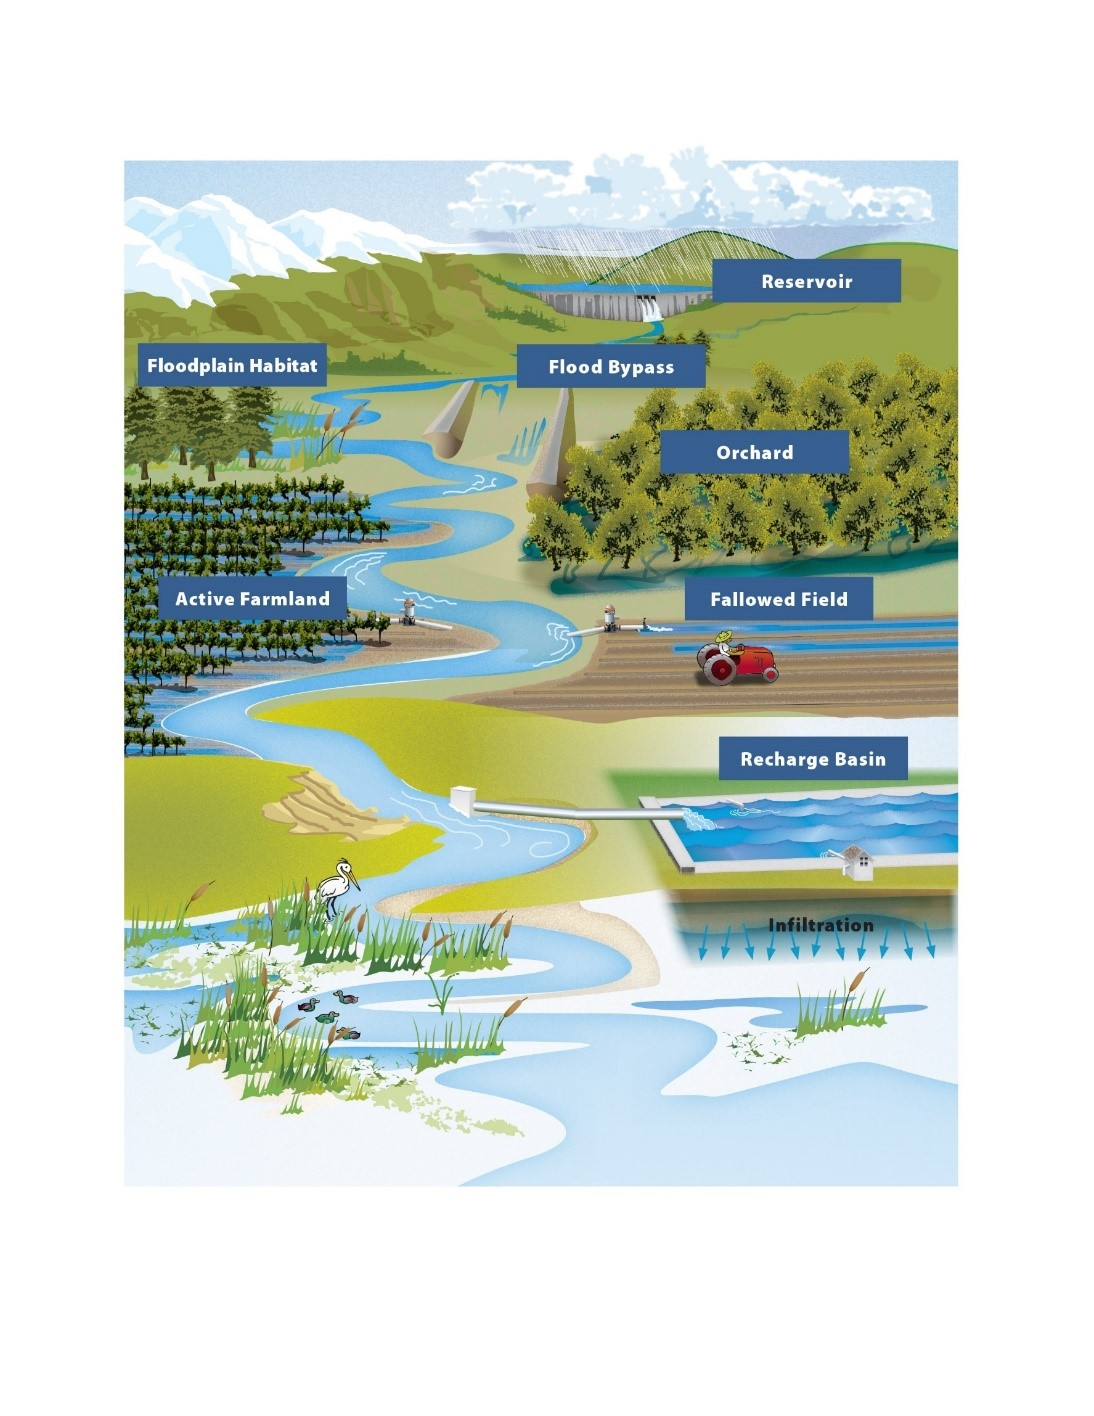 Flood - MAR illustrated concept of aquifer recharge.